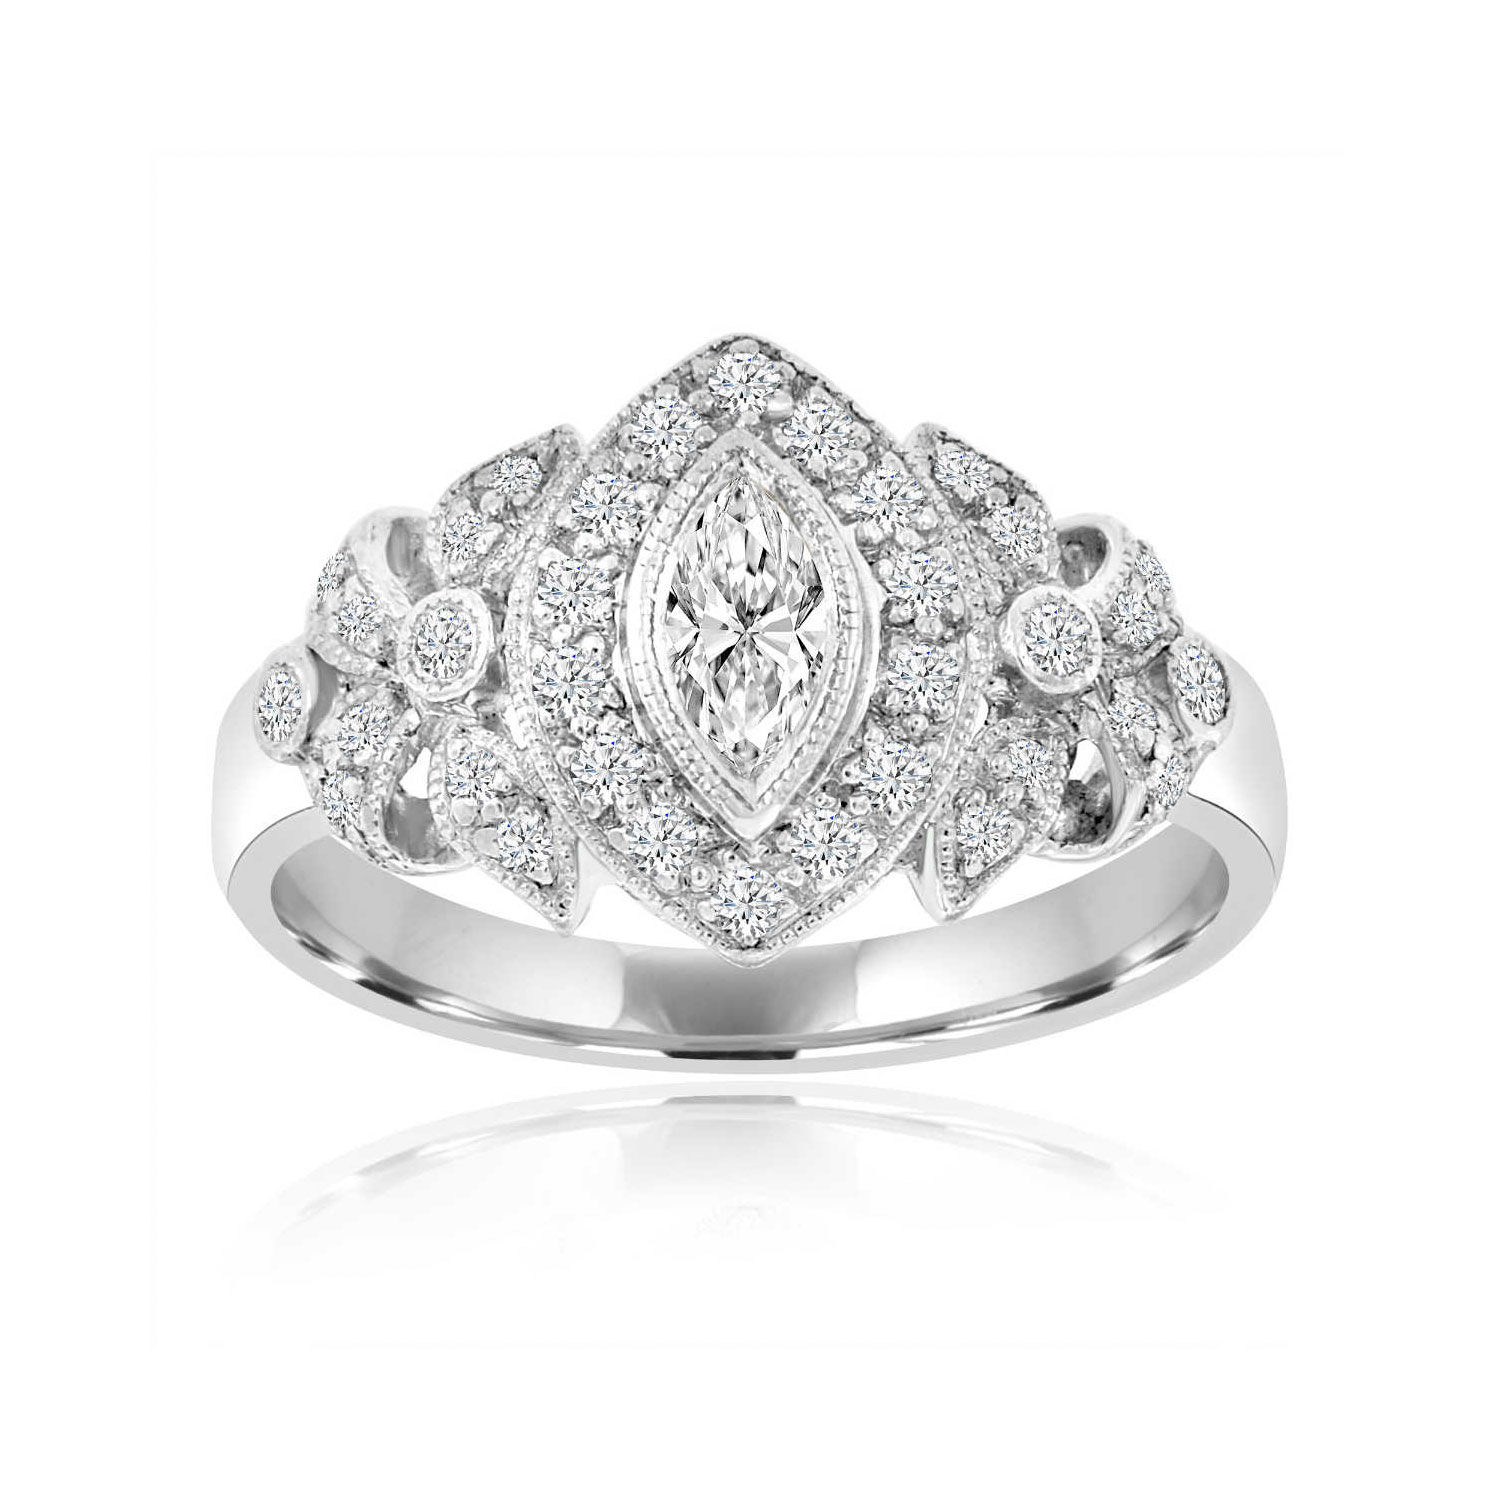 18K White Gold Vintage Marquise Diamond Ring ( 0.52 ct. tw)